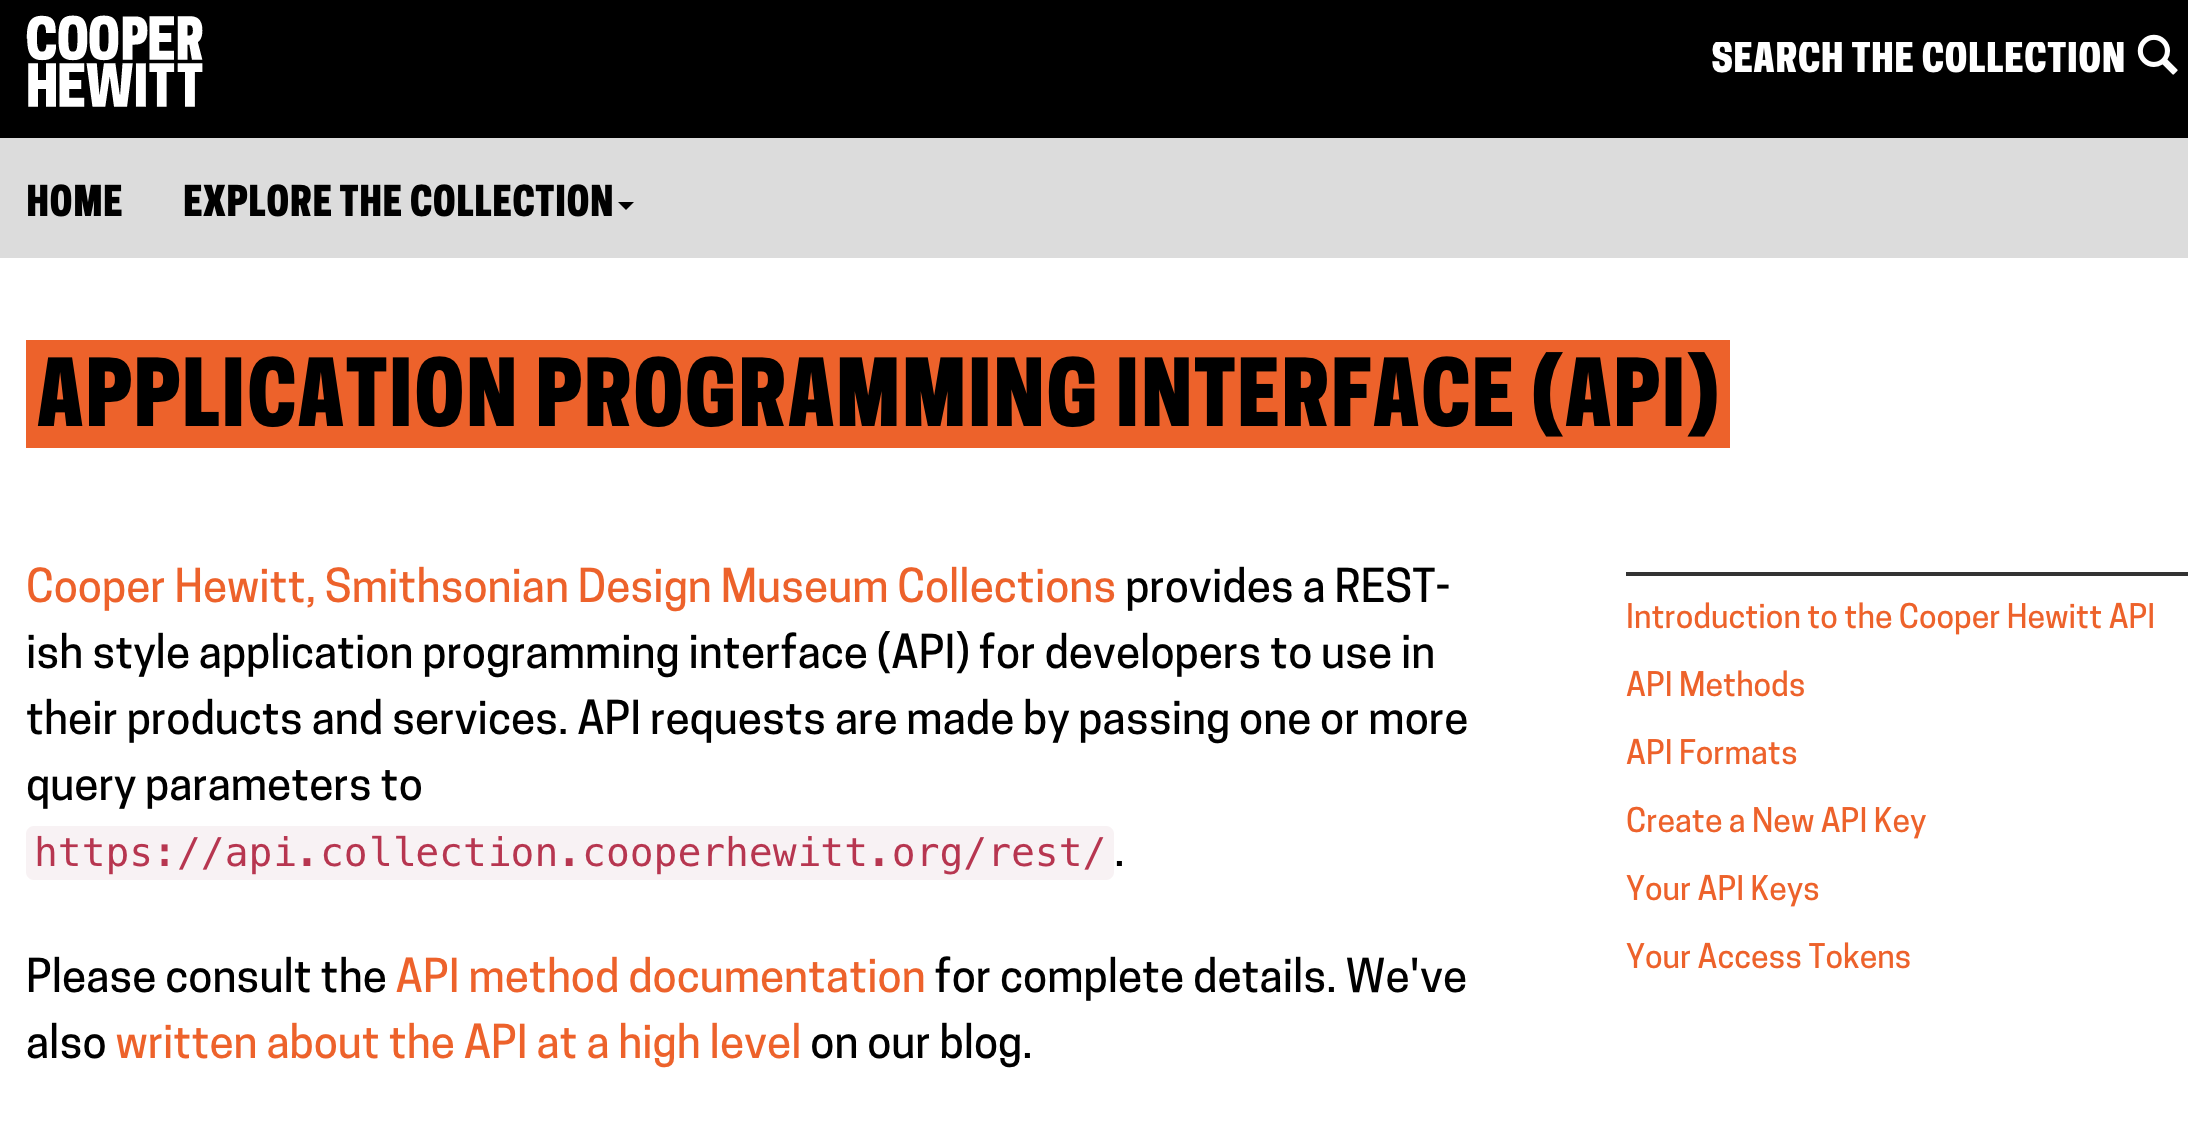 Cooper Hewitt API Introduction